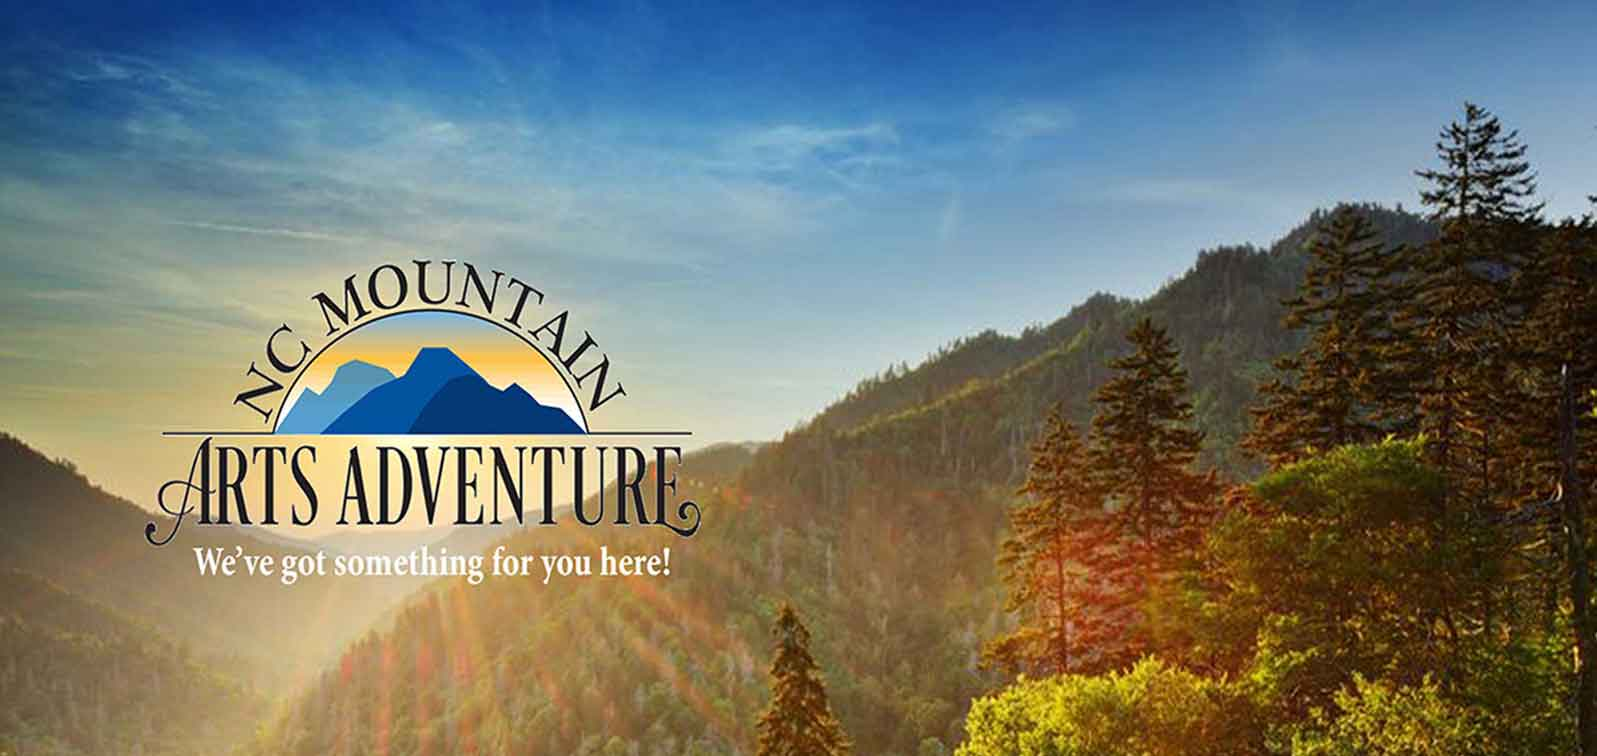 nc mountain arts adventure we have something for you here